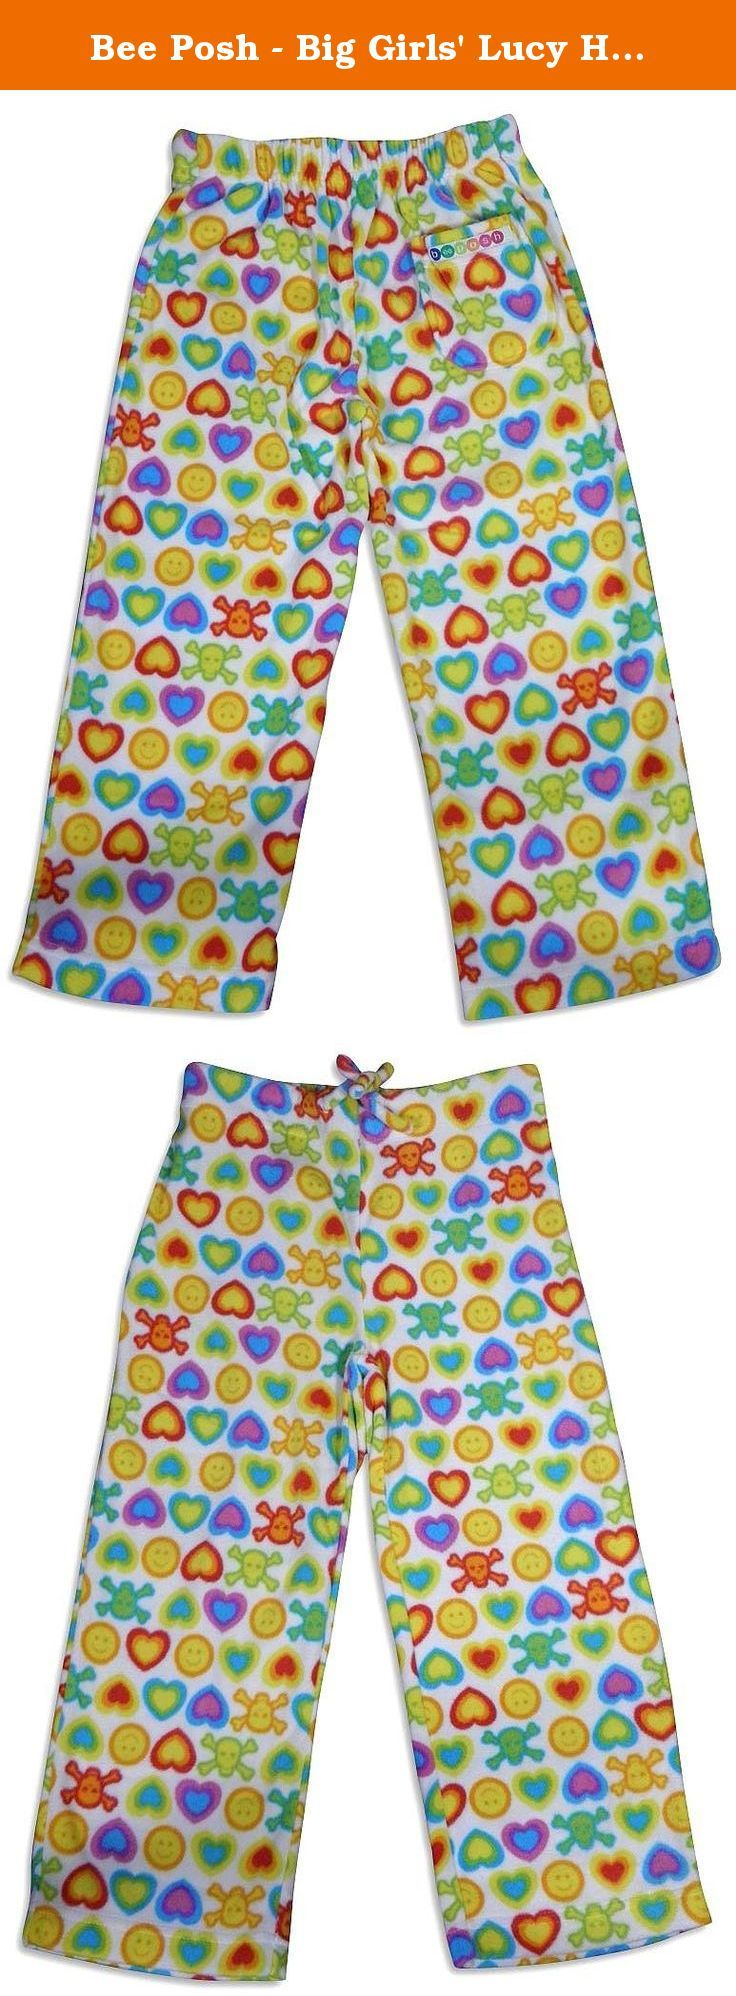 Bee Posh - Big Girls' Lucy Hedgehog Cozy Fleece Pajama Pant, White, Multi 25523-Small. Feel The Comfort In Style with these elastic back waistband pajama pant and a drawstring front, They have a single back pocket, Made of 100% flame resistant polyester in China, Size XS = 4-6 S = 7-8 M = 10-12 L= Kids 14/Adult Small XL = Kids 16/Adult Medium.